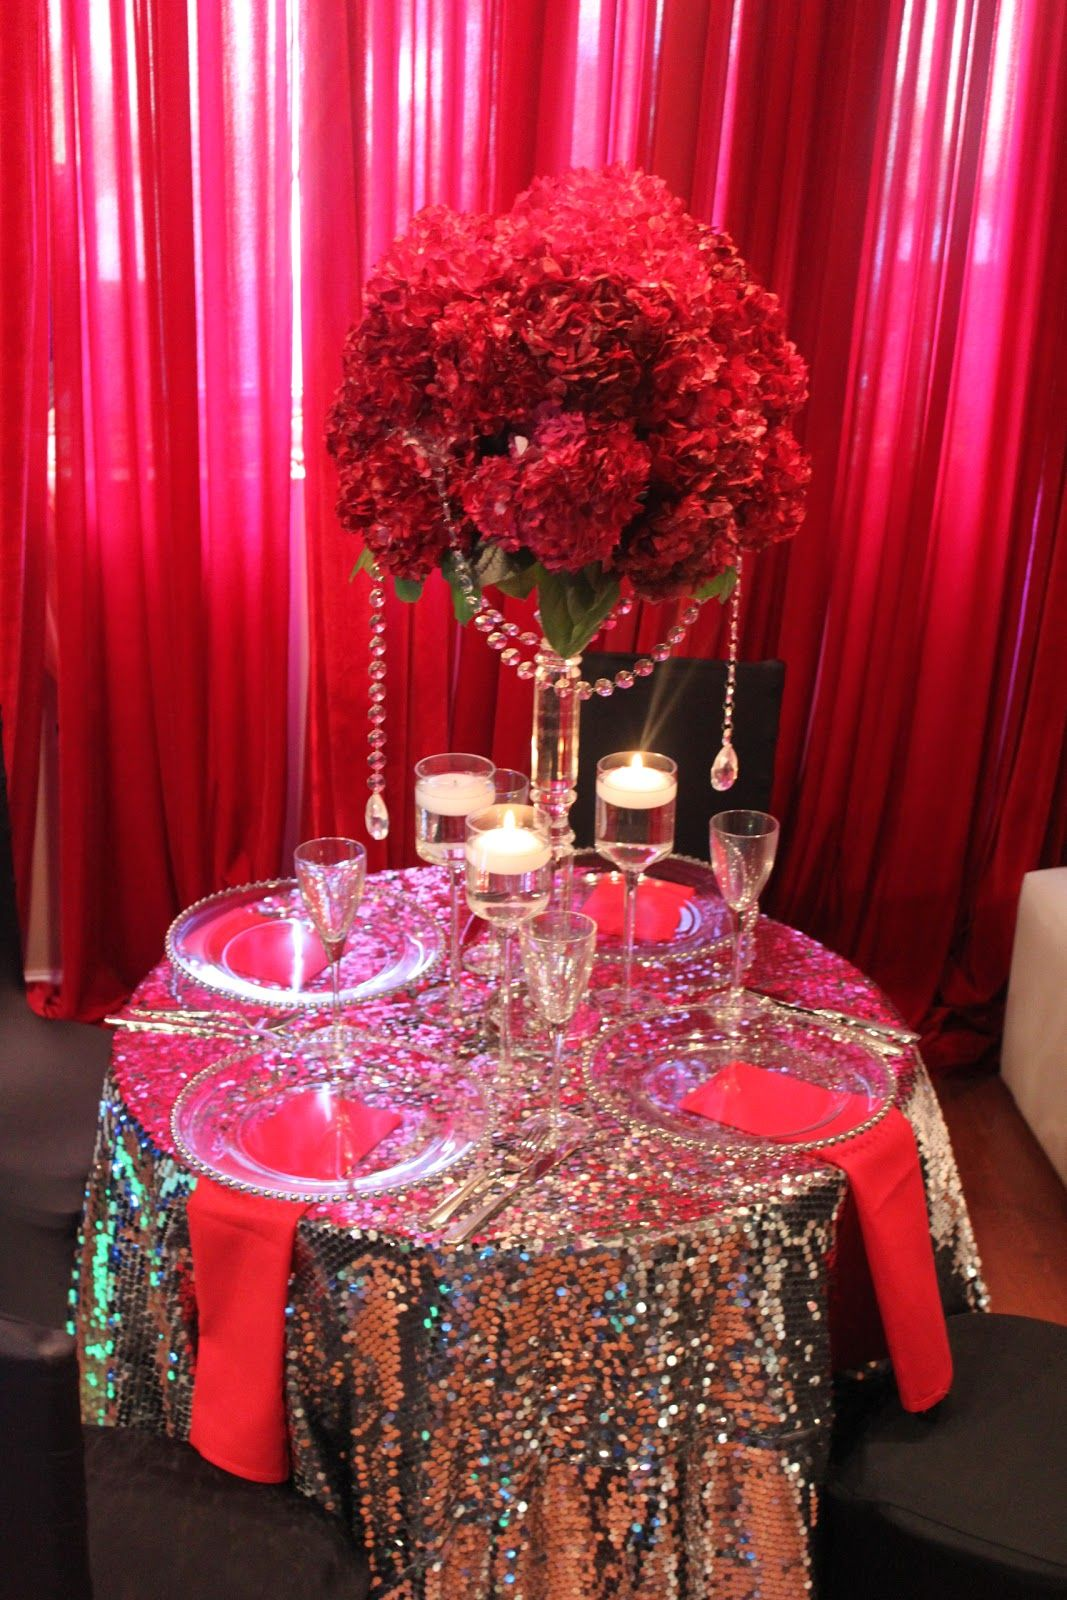 tall red rose wedding centerpieces | bridal style and wedding ideas ...